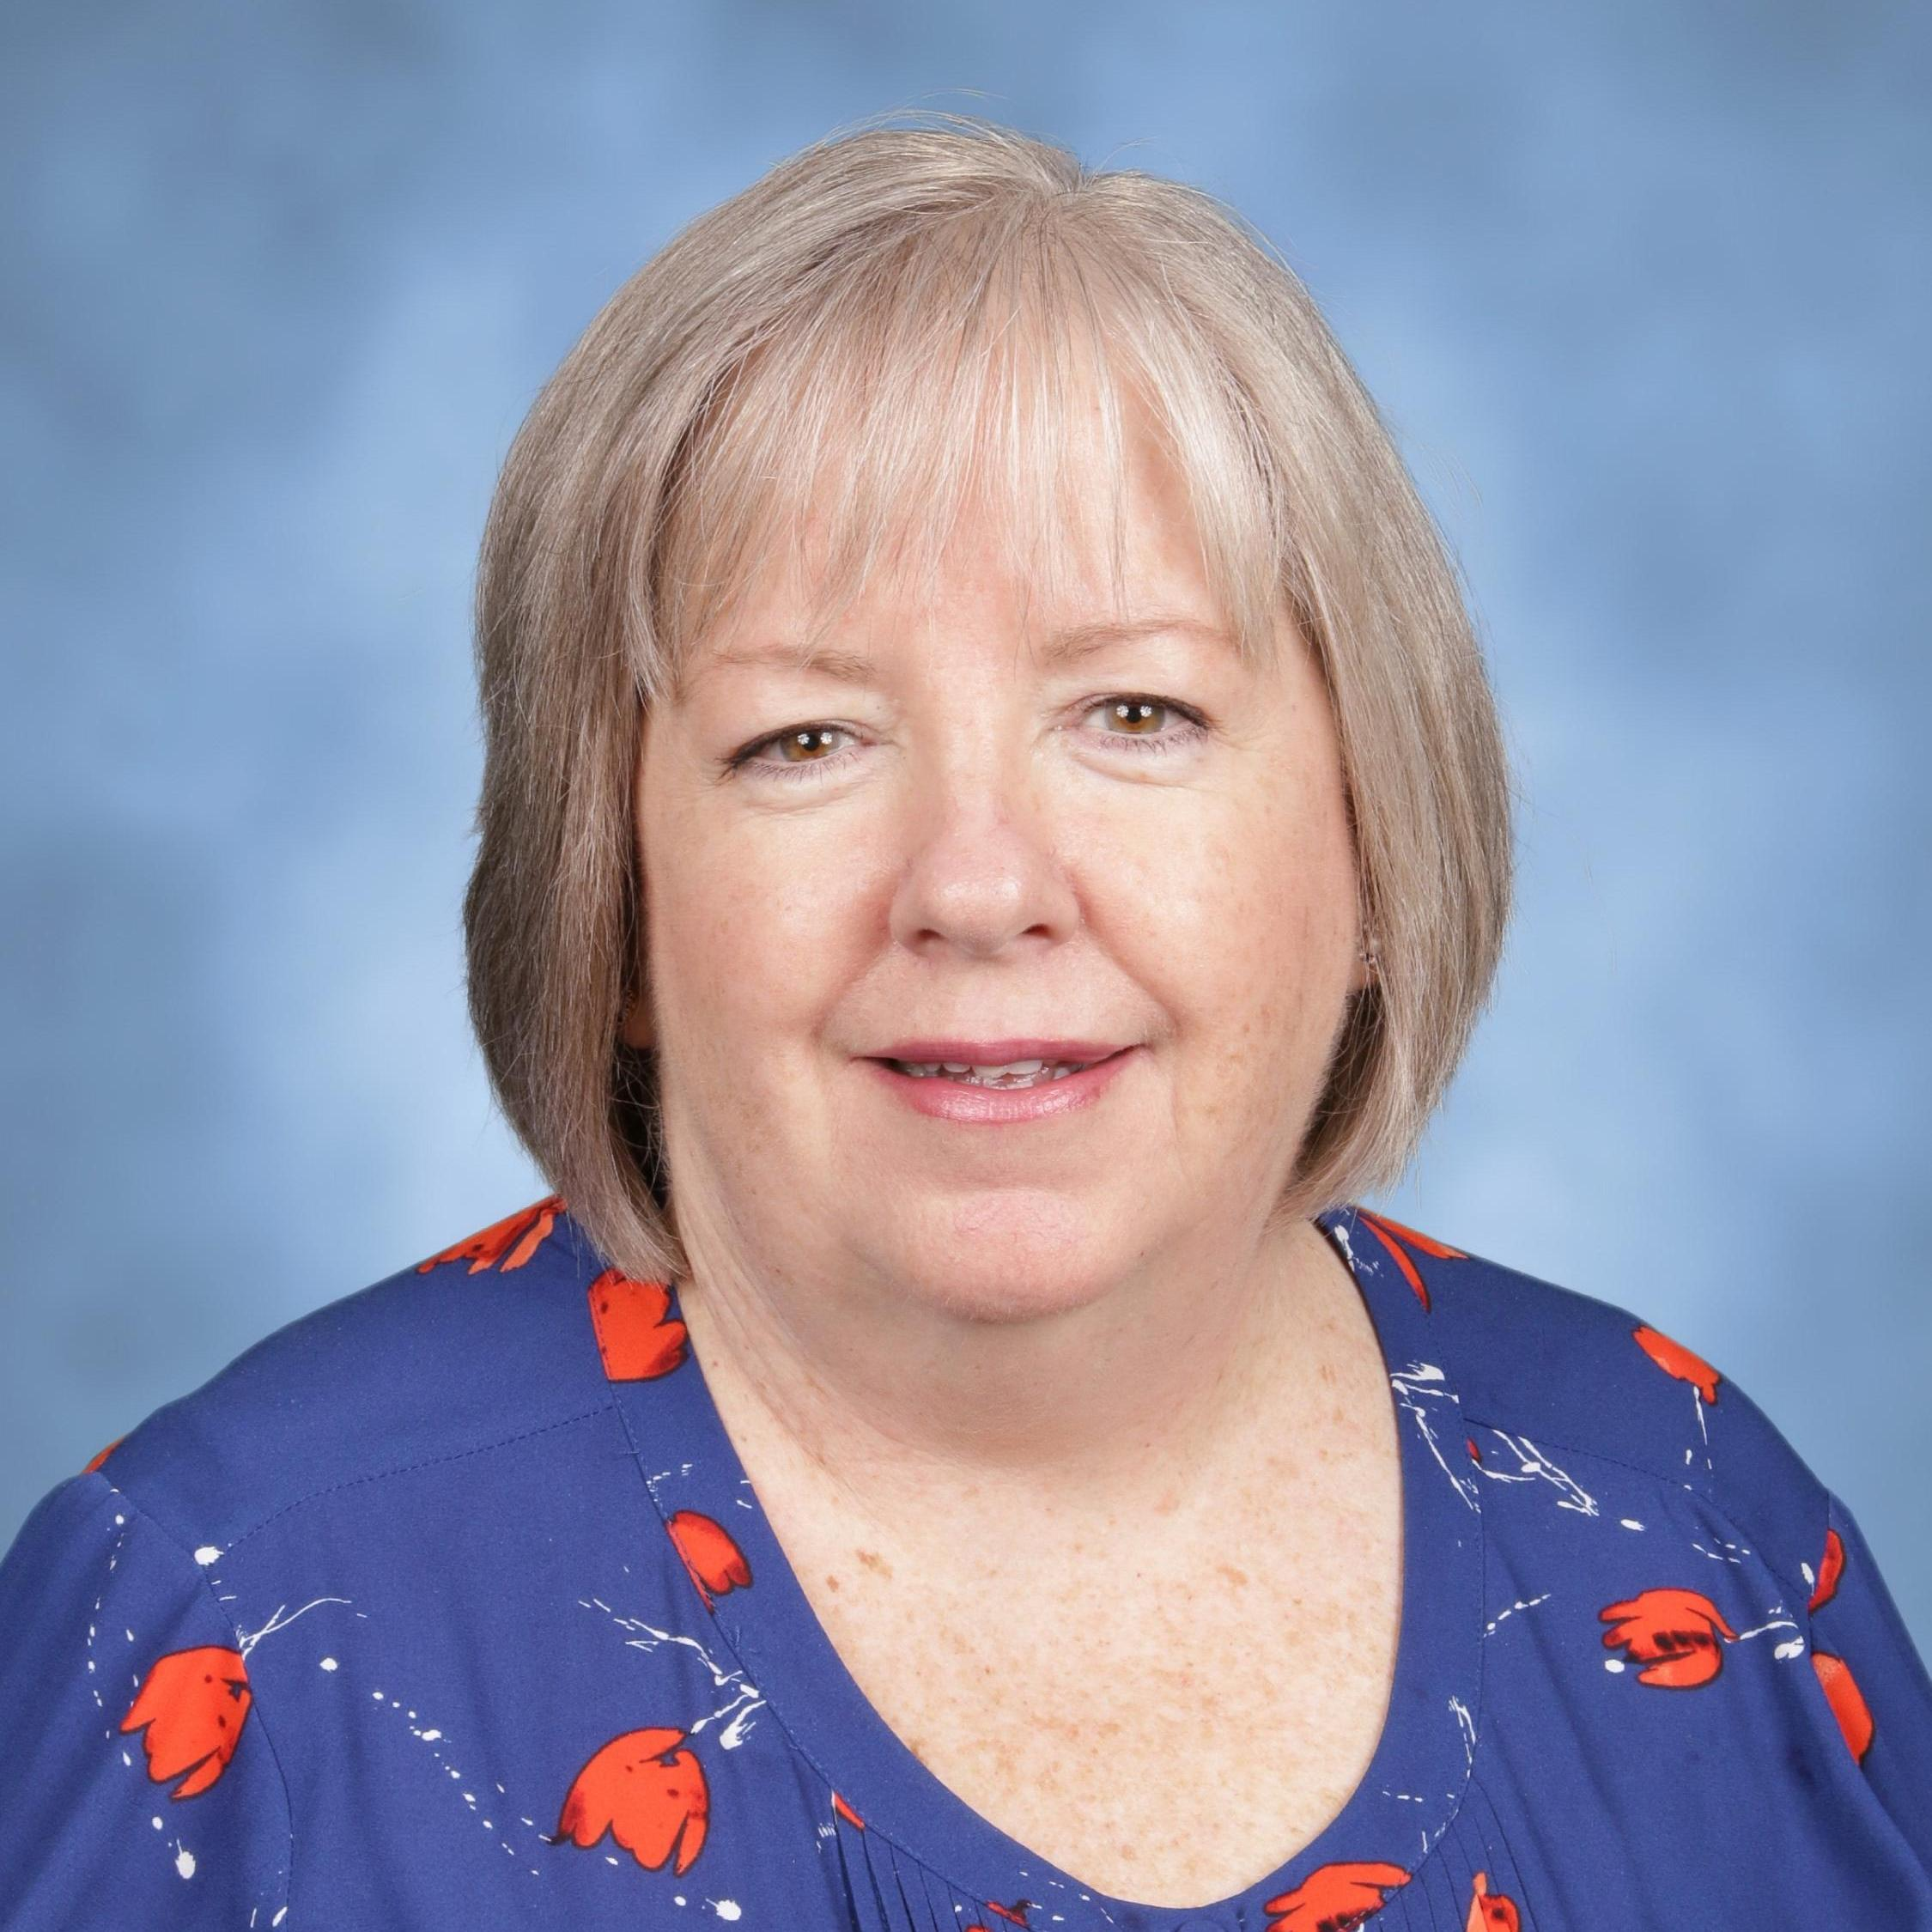 Mrs. Karen  Sucher`s profile picture